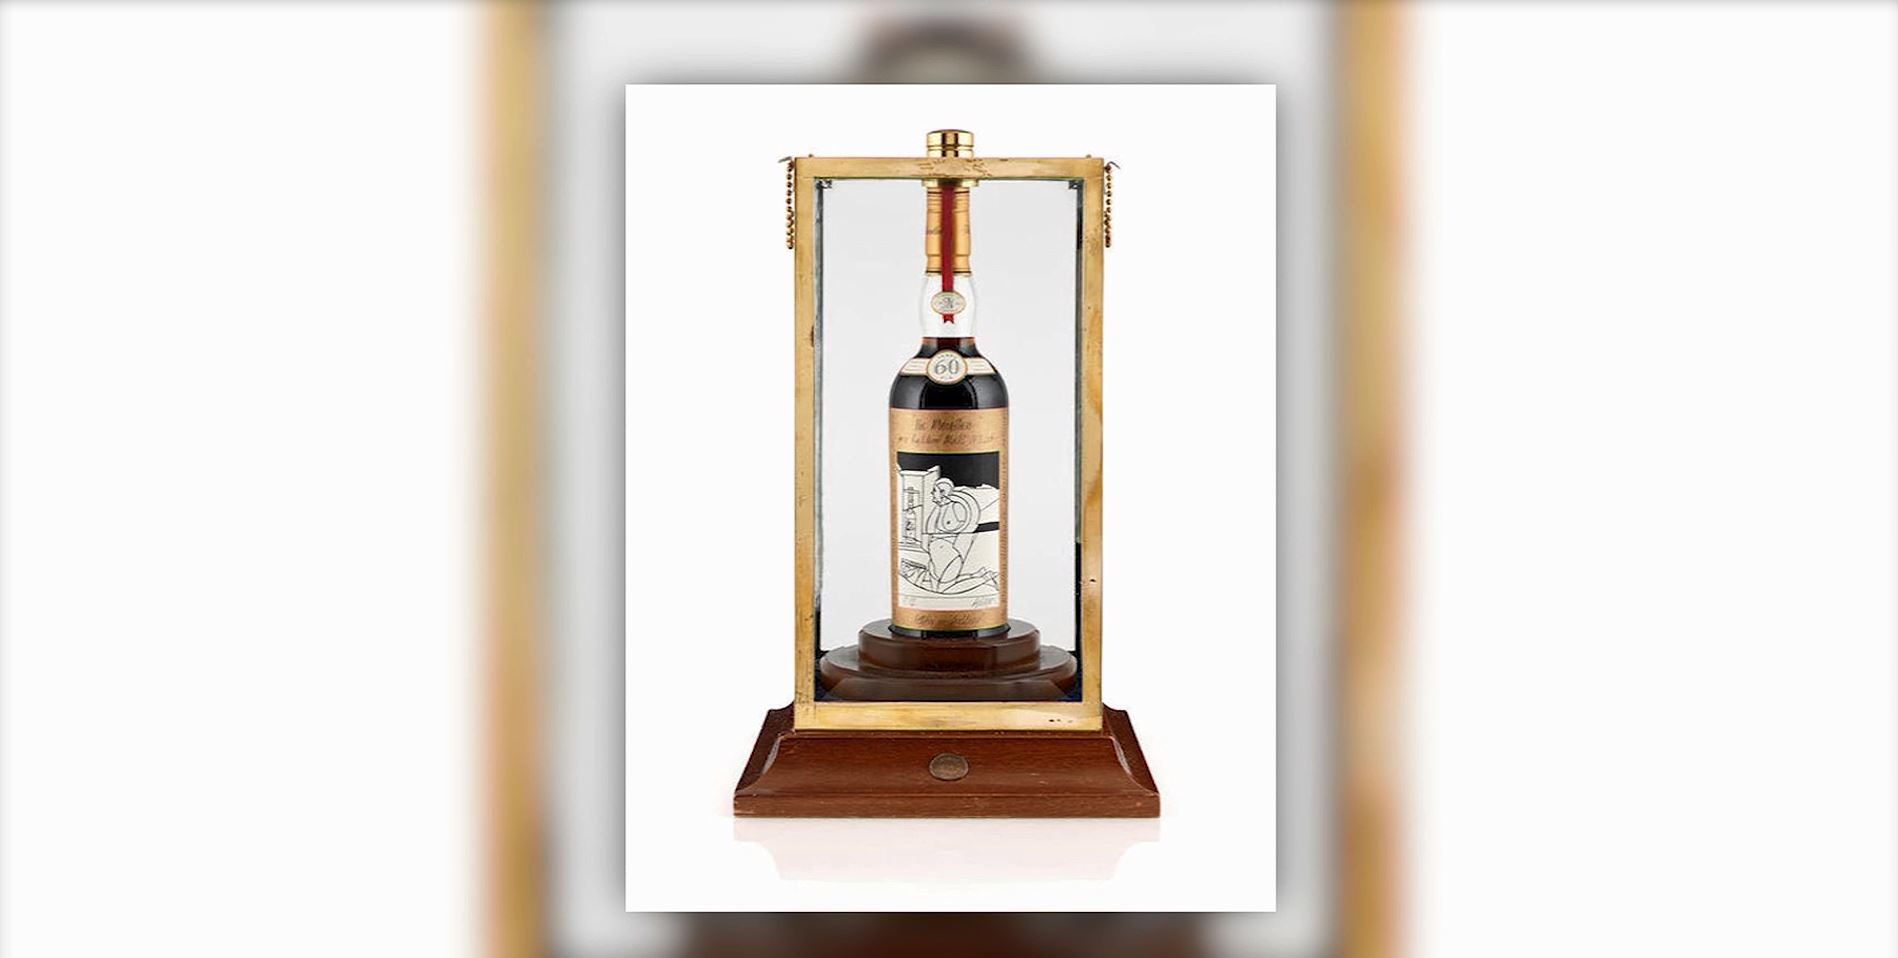 Bottle of whisky distilled in 1926 sells for more than $1 million